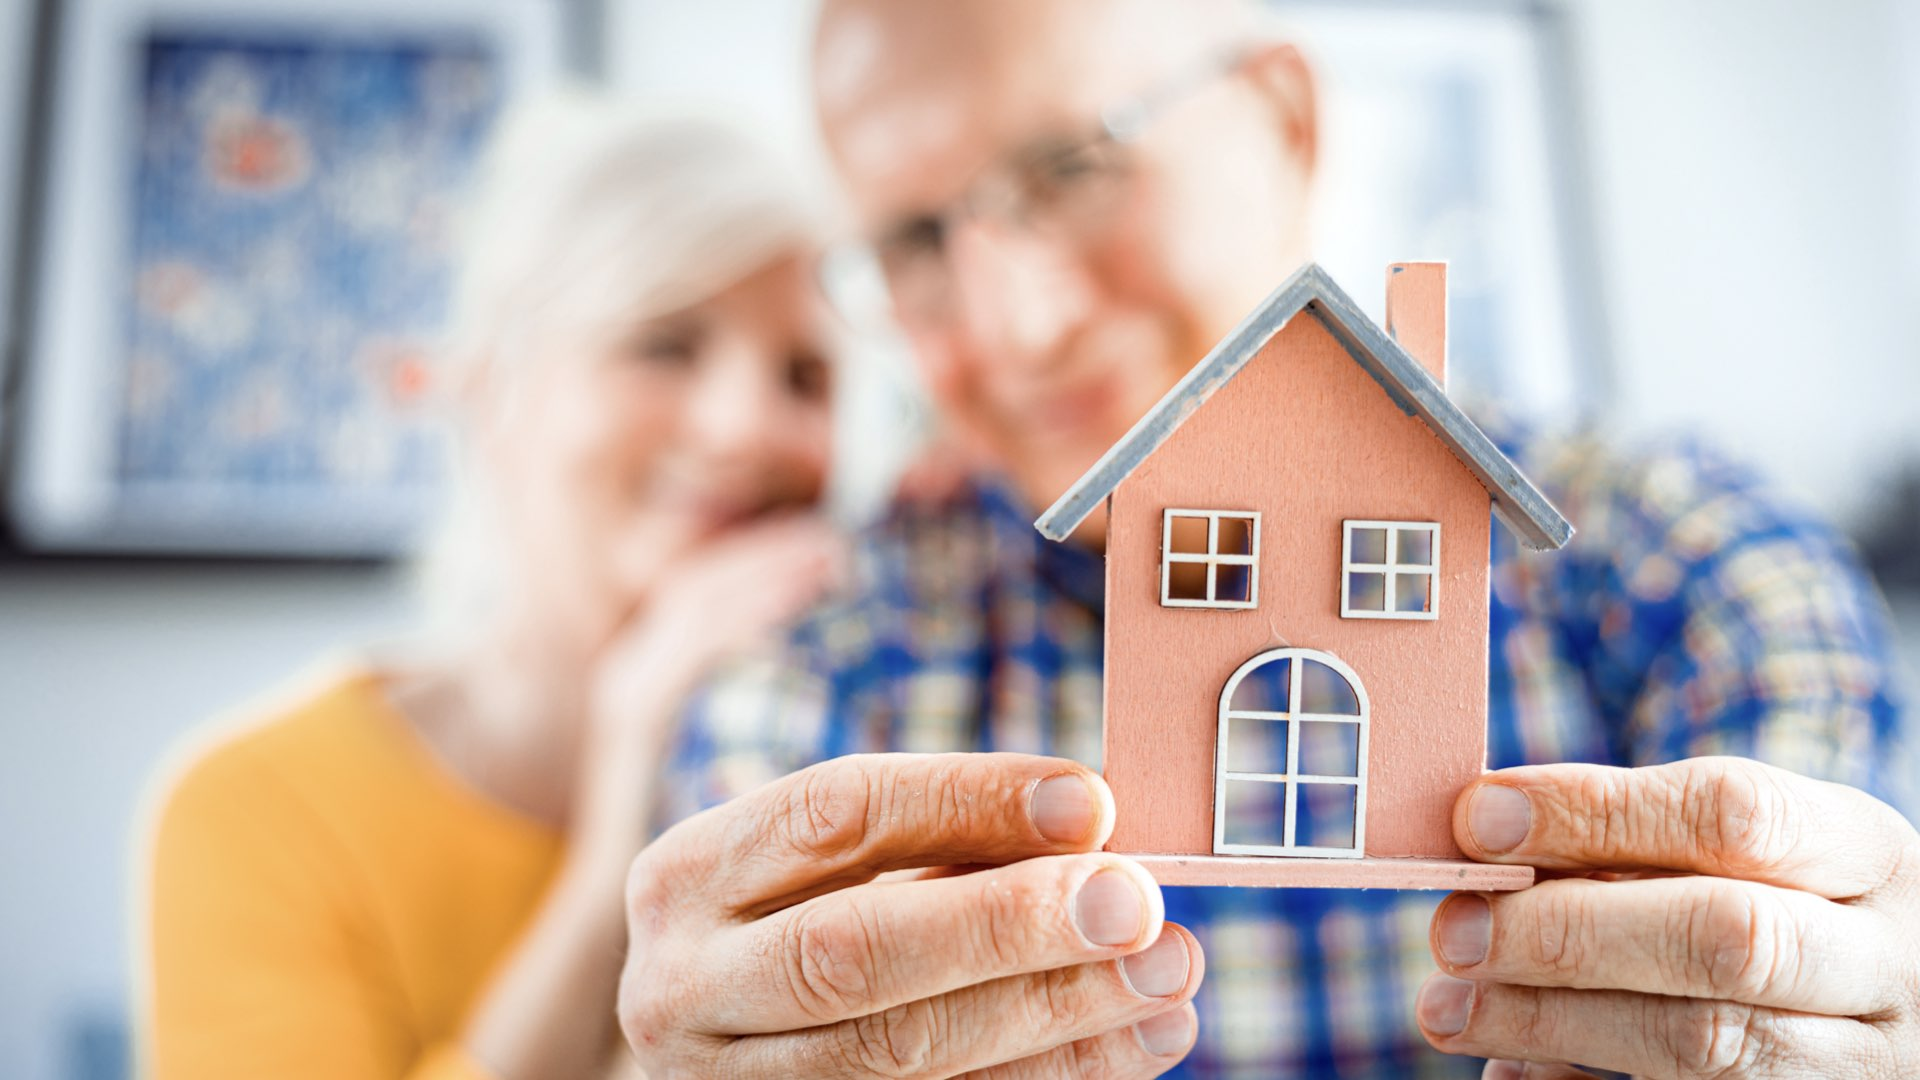 The good is many older homeowners may find their solution literally right above their heads and in the walls that surround them. Where unemployment benefits and a loss of income create a cashflow crisis reverse mortgages may increasingly become the logical solution